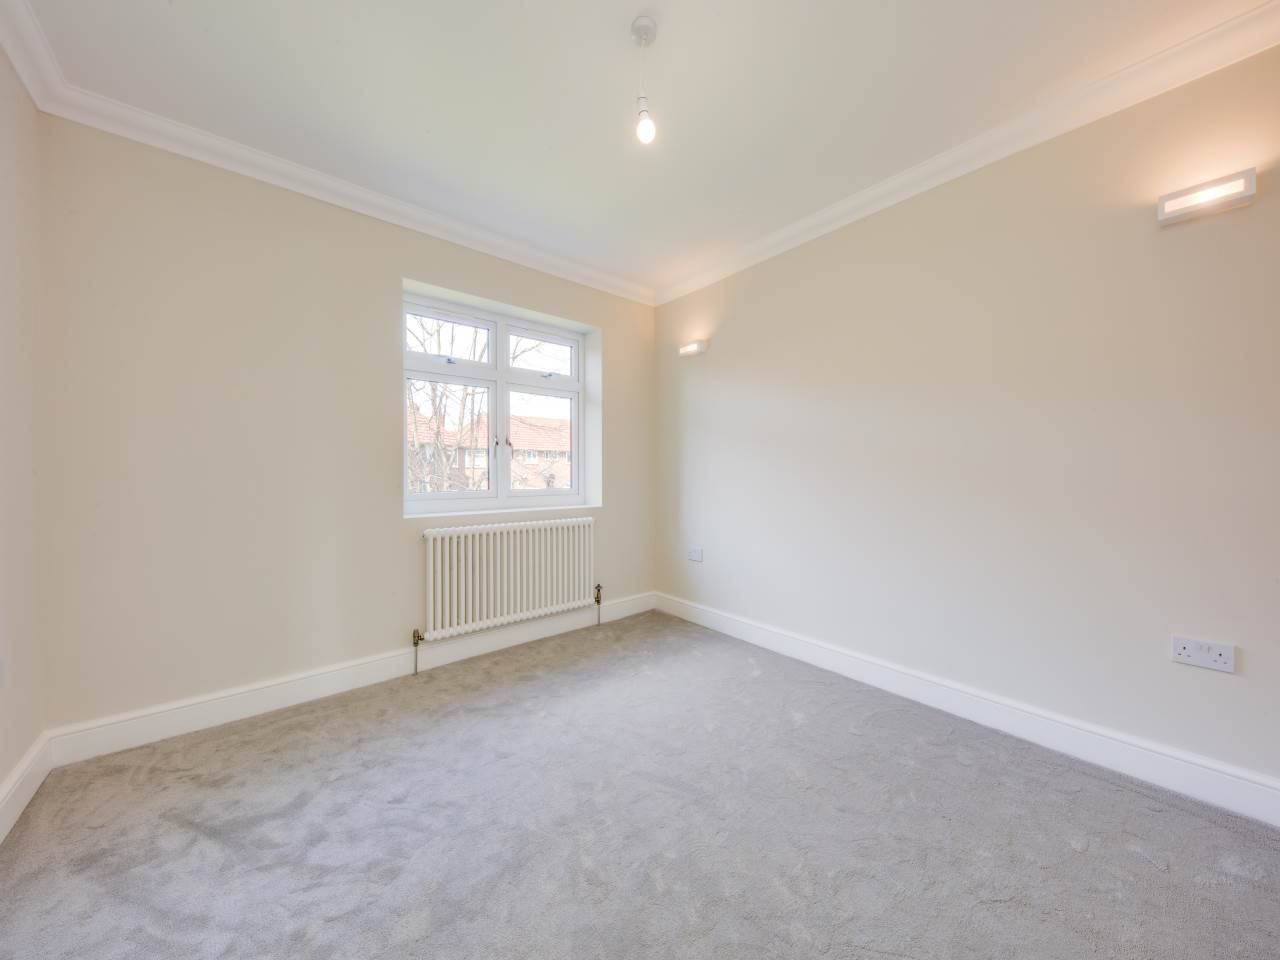 3 bed house for sale in Shernhall Street , Walthamstow   - Property Image 11